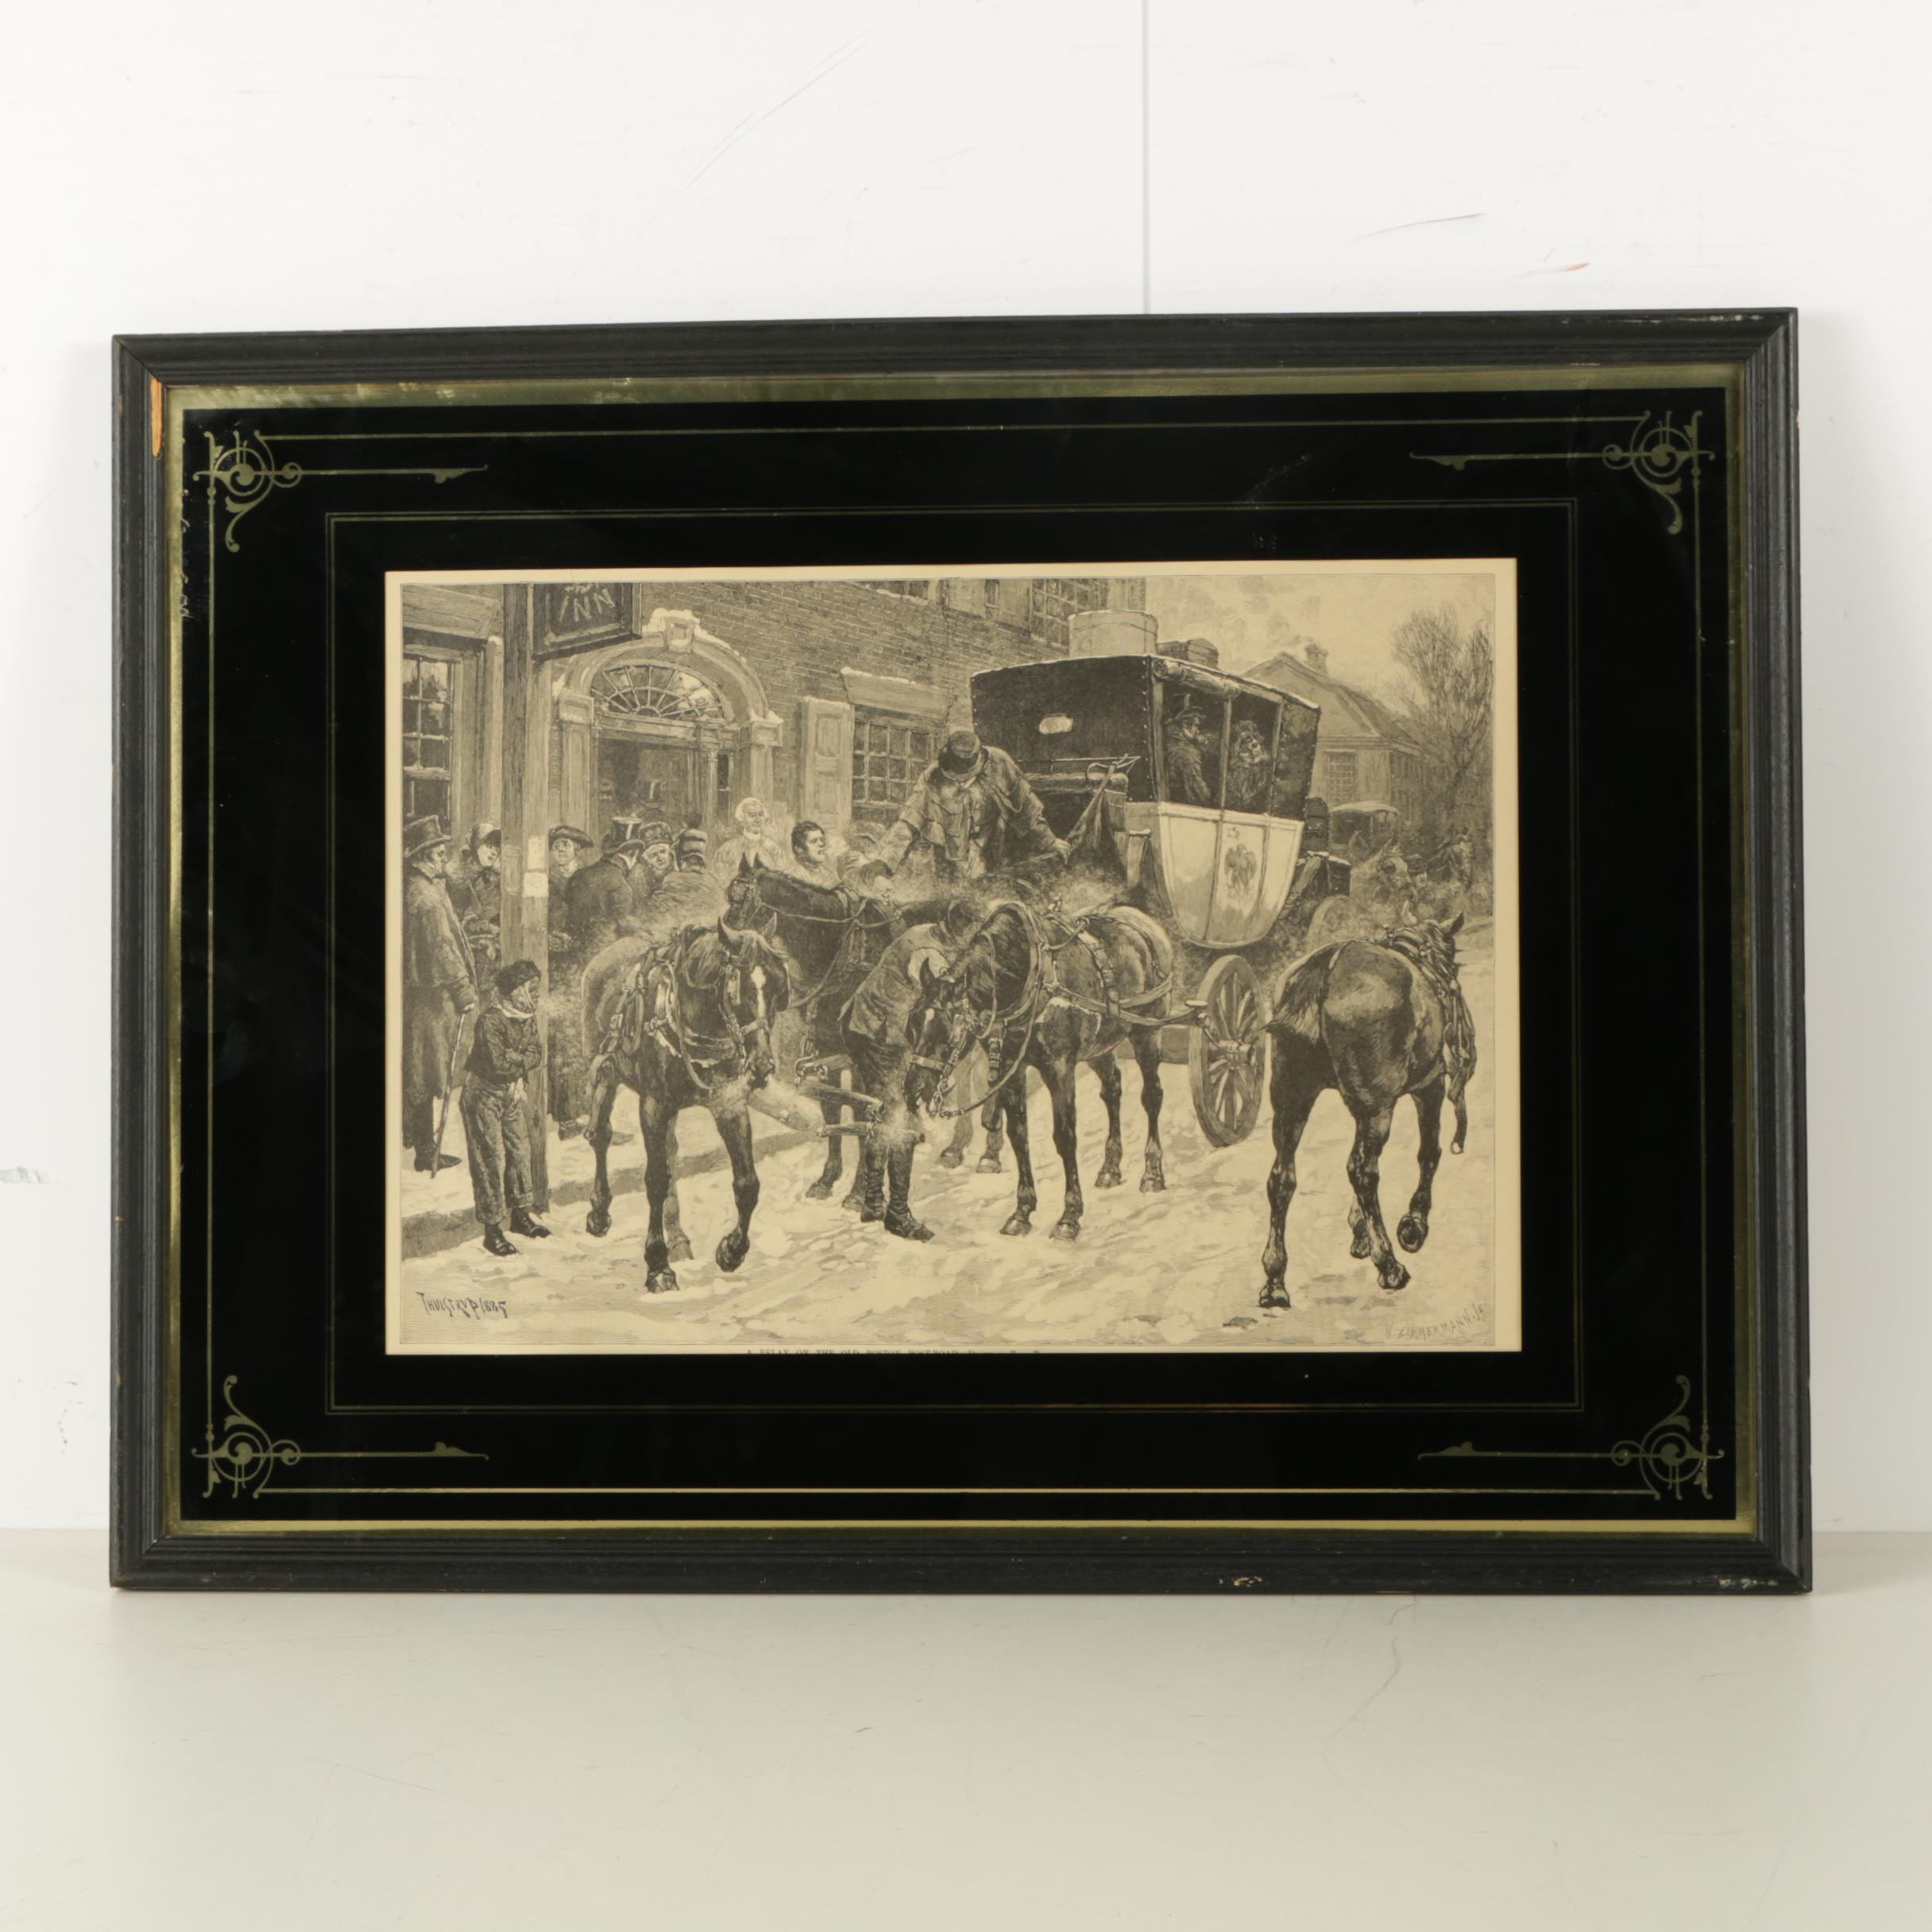 """Reproduction Print on Paper After After Thulsrup """"A Relay on the Old Boston"""""""